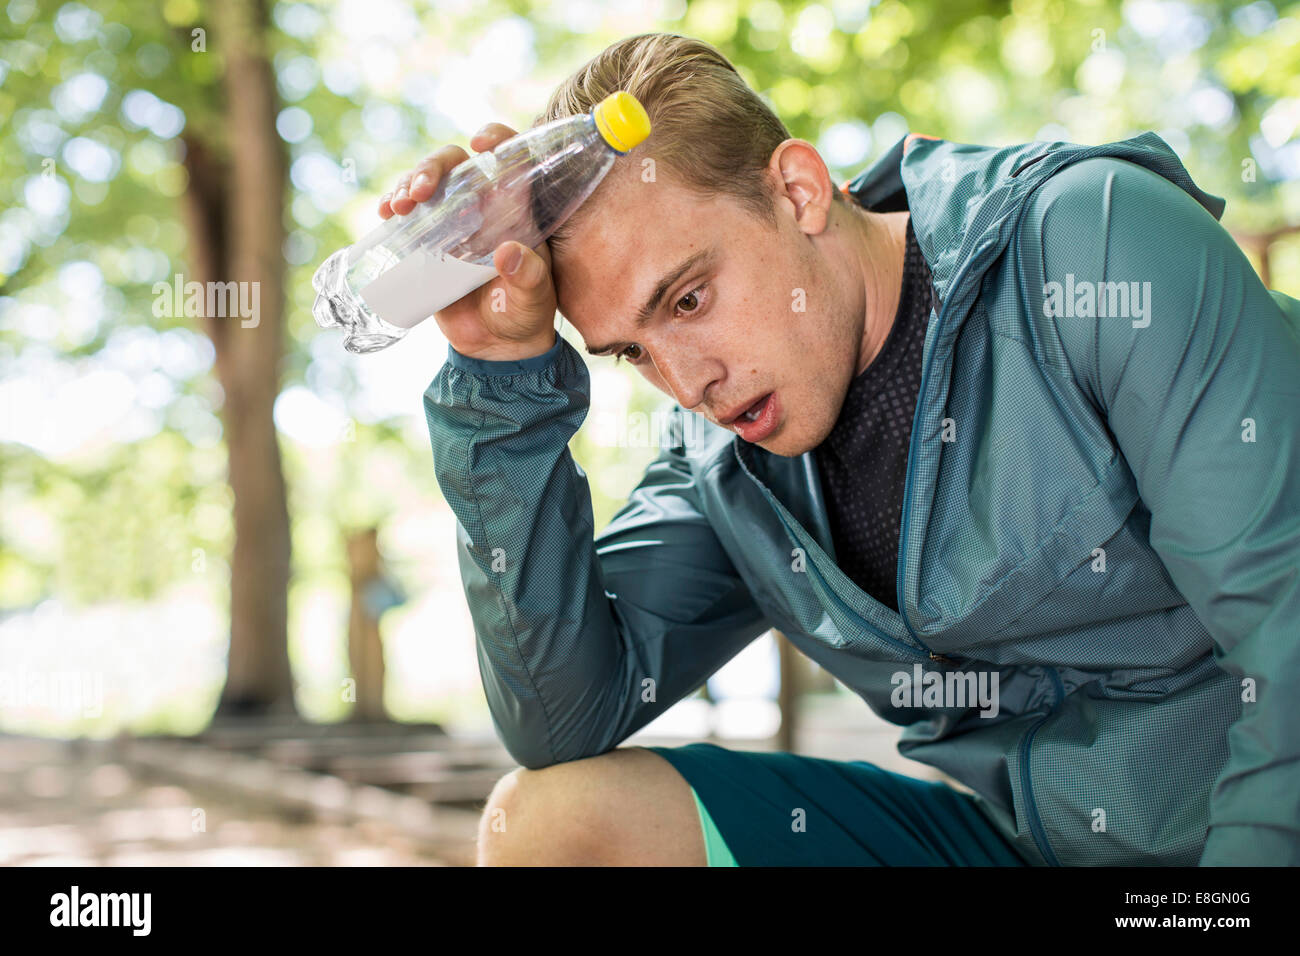 Tired man panting while holding water bottle after workout at park - Stock Image